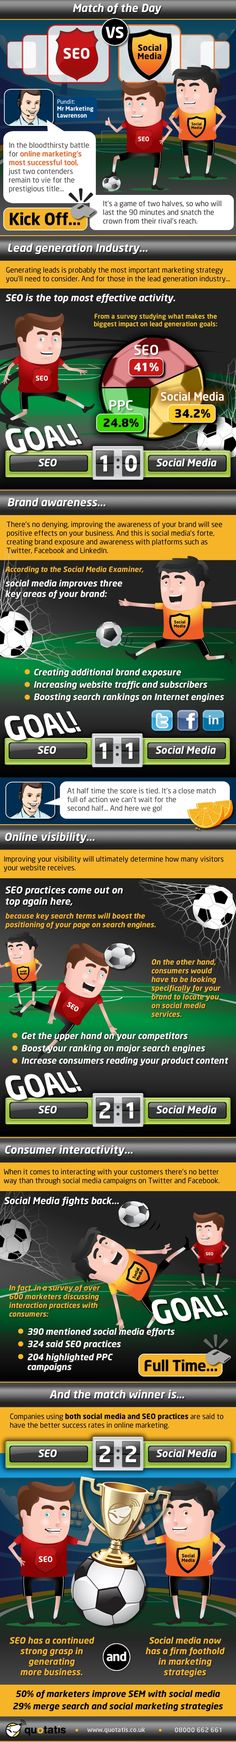 Match of the day: SEO vs Social Media